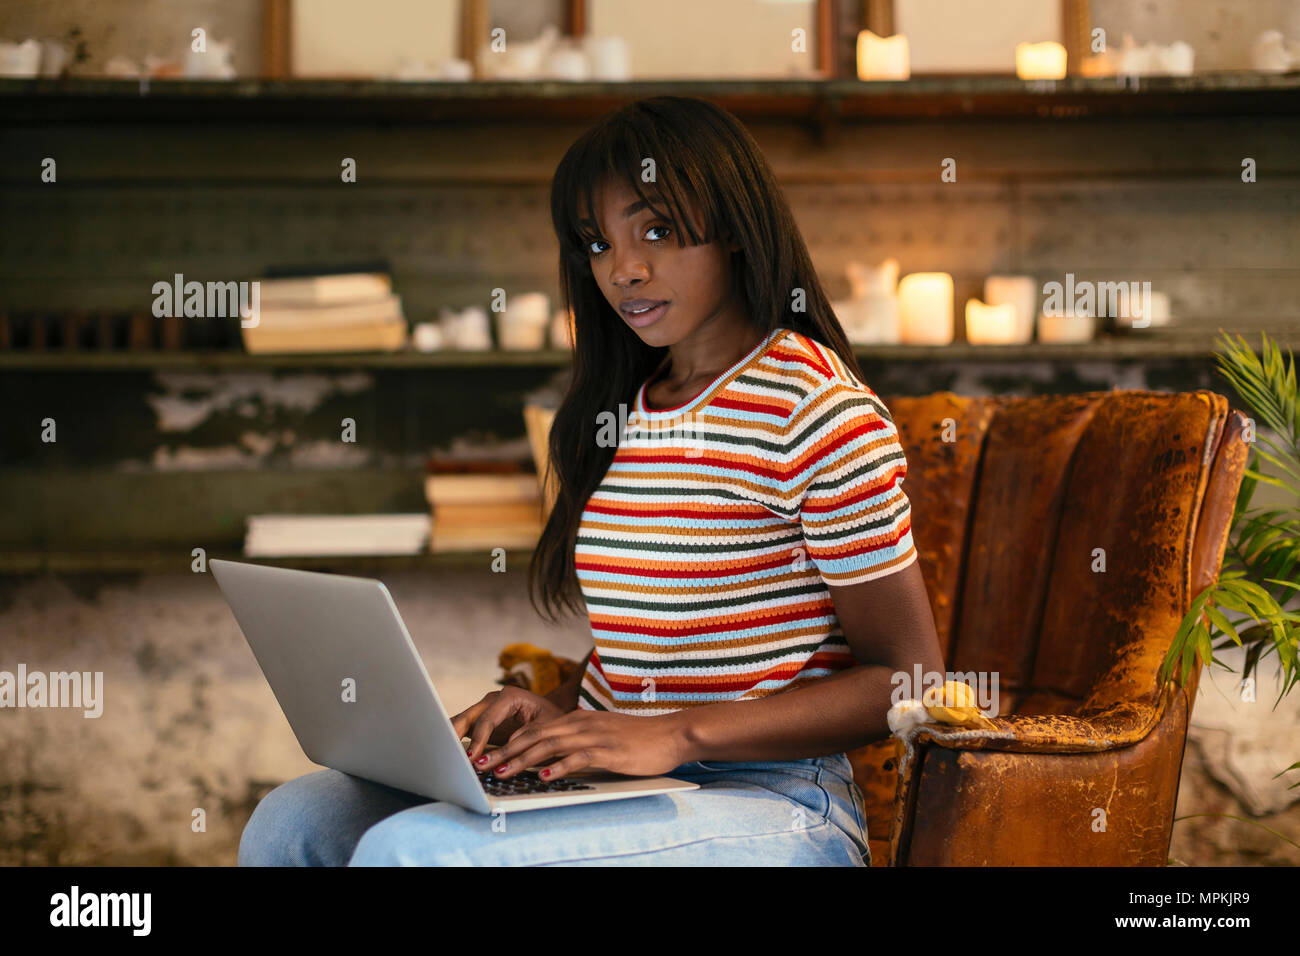 Portrait of young woman sitting on an old leather chair working on laptop in a loft - Stock Image